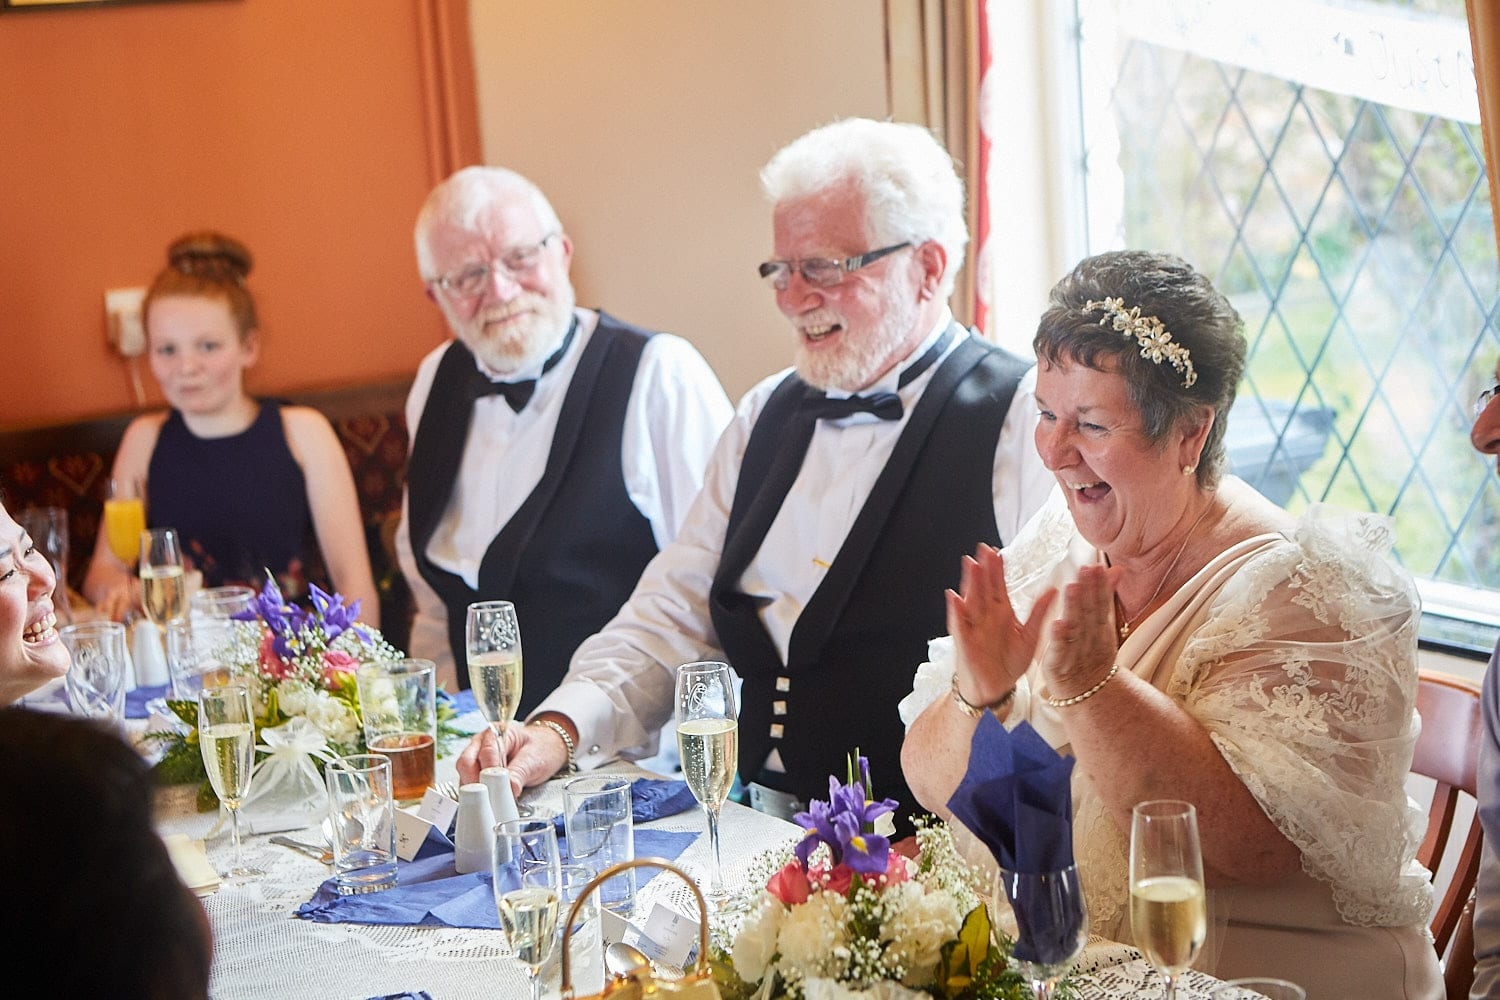 A bride, her husband and the best man laugh at speeches on their wedding day